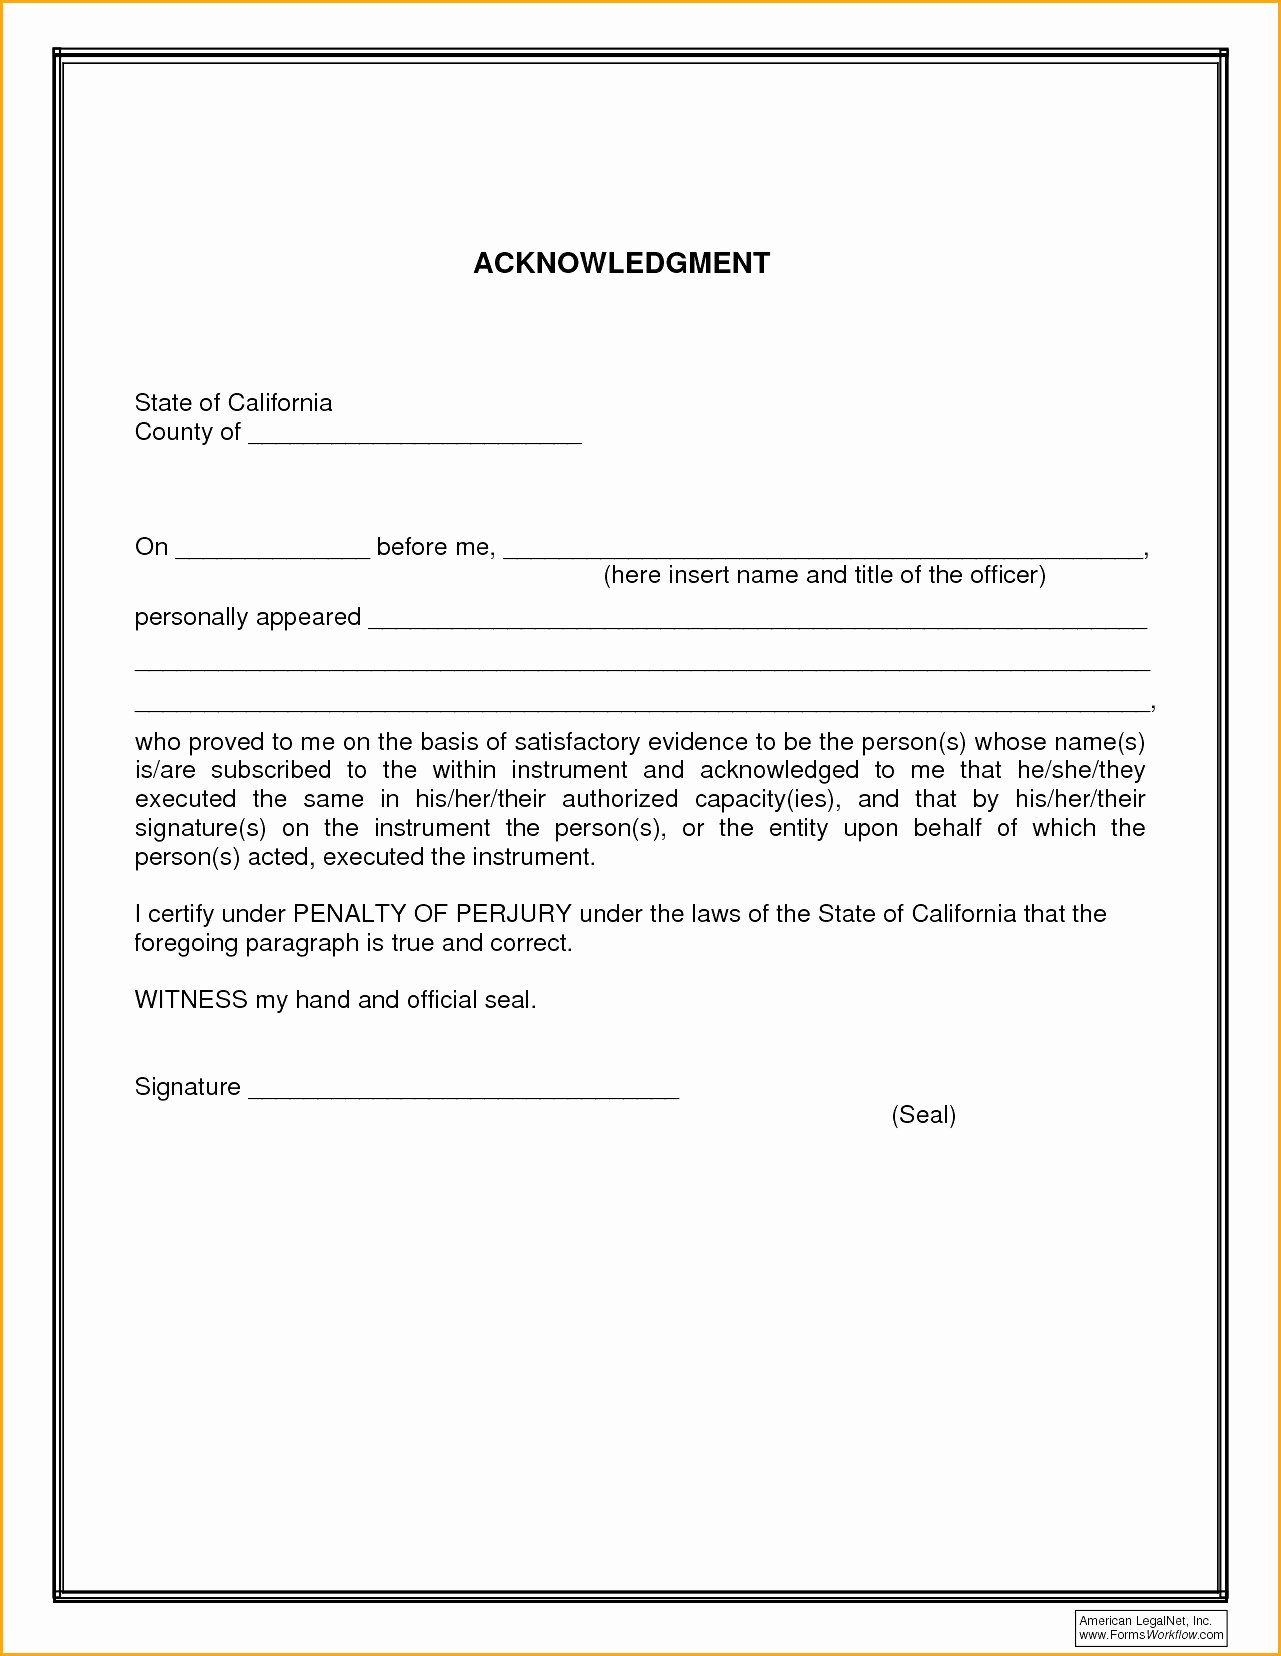 Notary Signature Block Template Best Of Texas Notary Signature Block Example 6 Books Historical